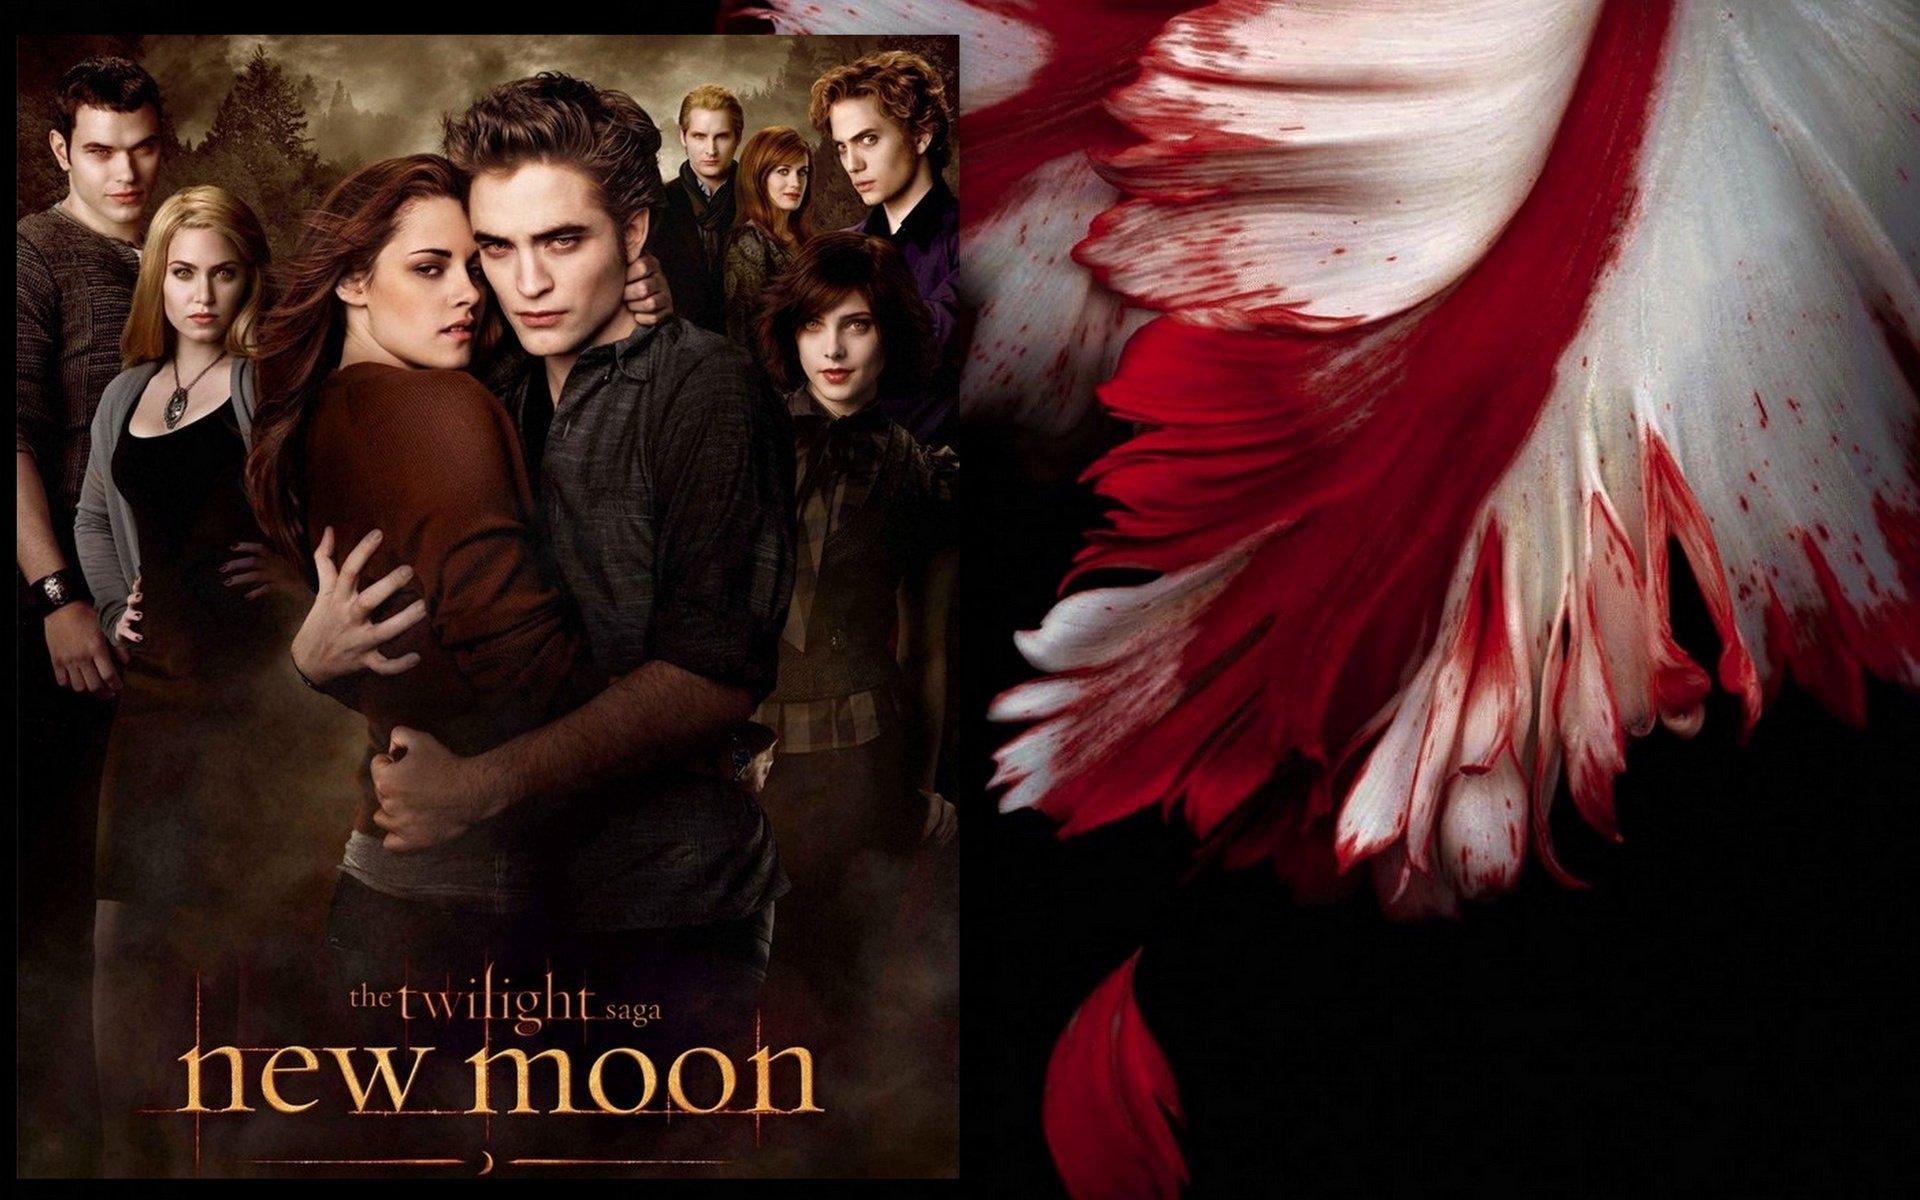 New-Moon-Wallpaper-2-twilight-series-8394252-1920-1200 - сумреки обои